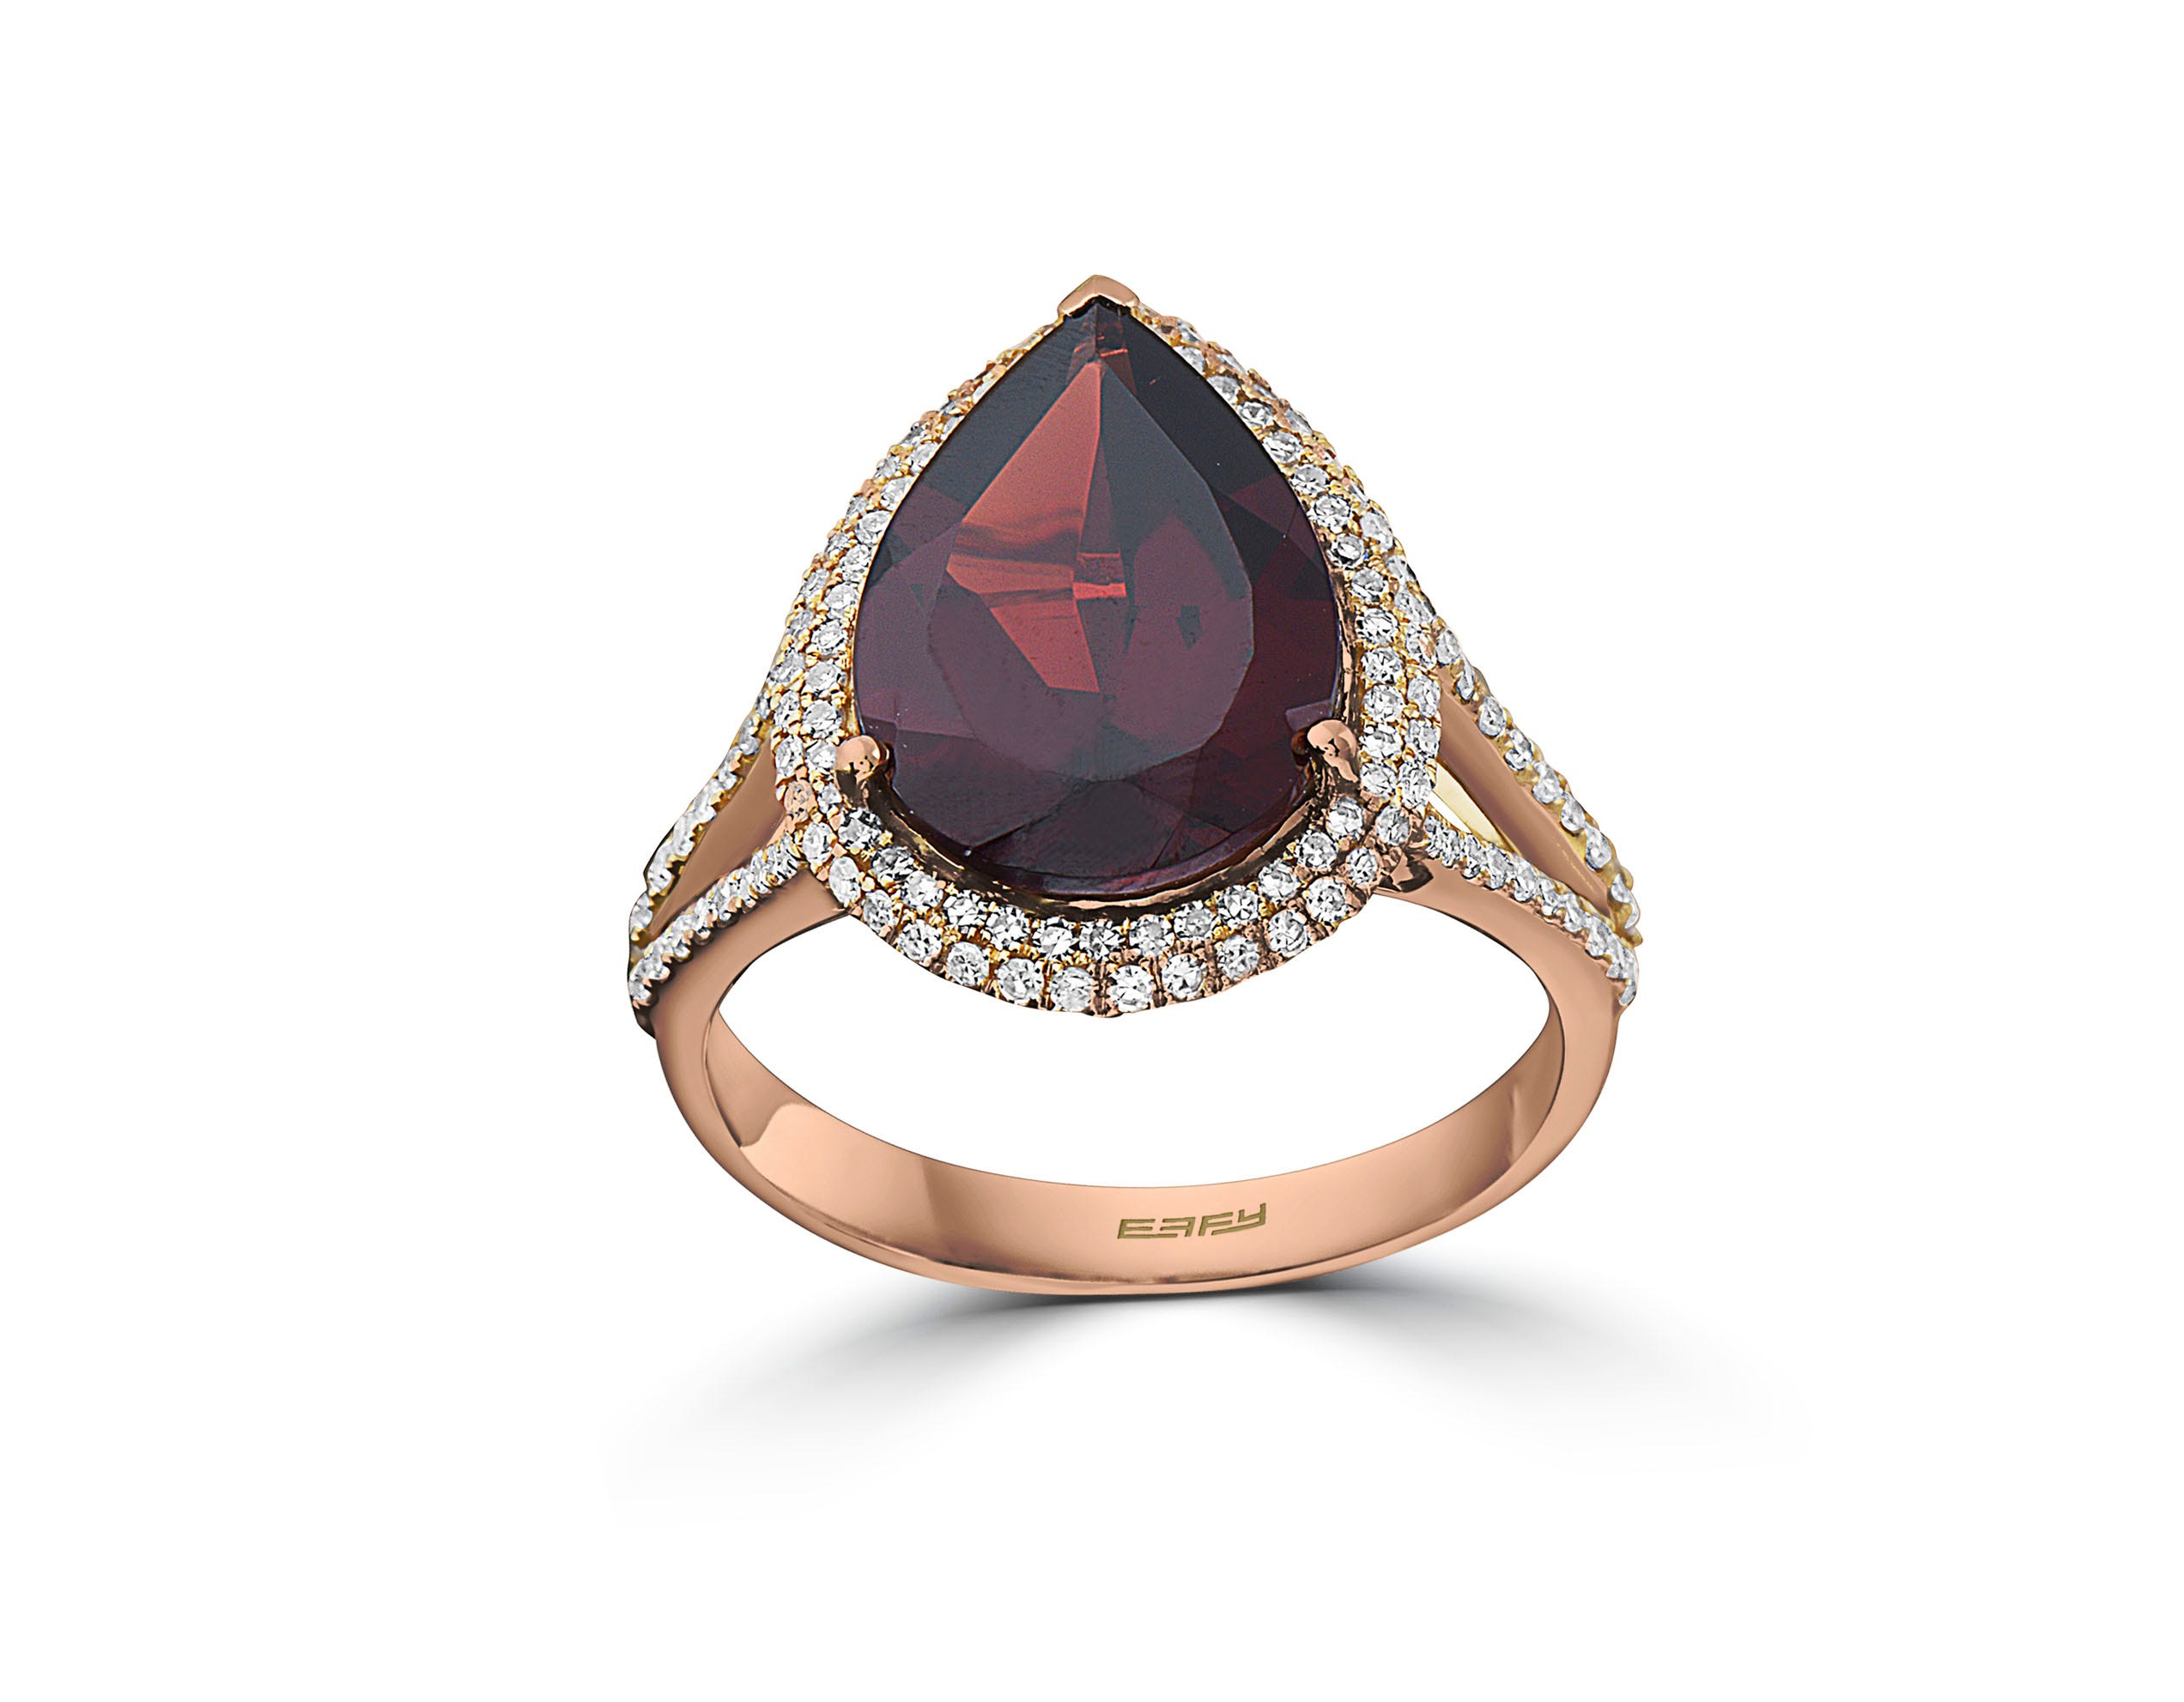 EFFY Pear-Shaped Garnet & Diamond Halo Ring in 14k Rose Gold